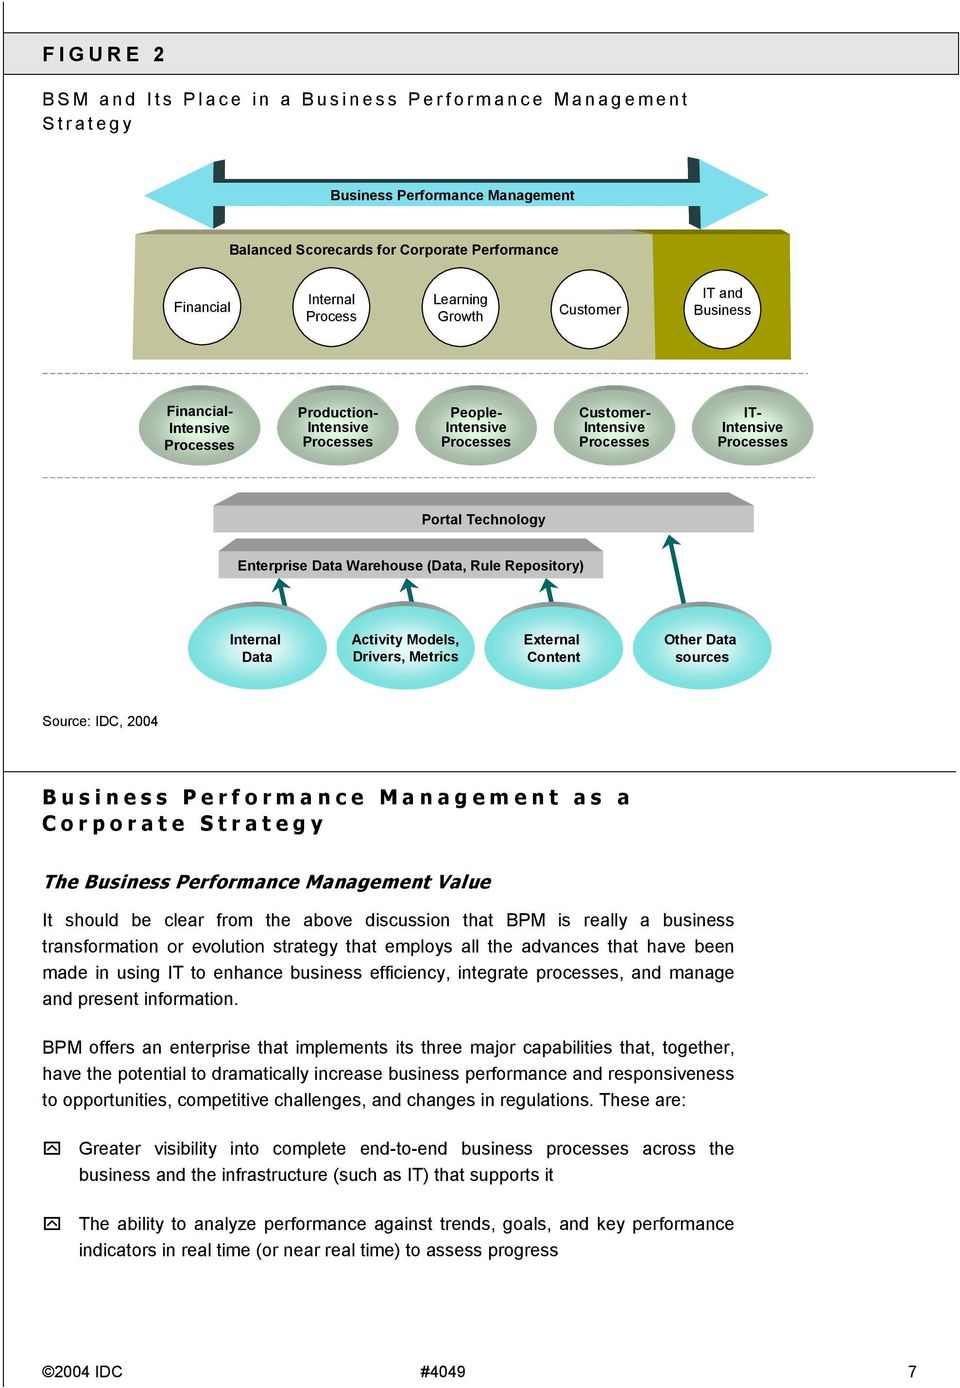 Rule Repository) Internal Data Activity Models, Drivers, Metrics External Content Other Data sources Source: IDC, 2004 Performance Management as a Corporate Strategy The Performance Management Value